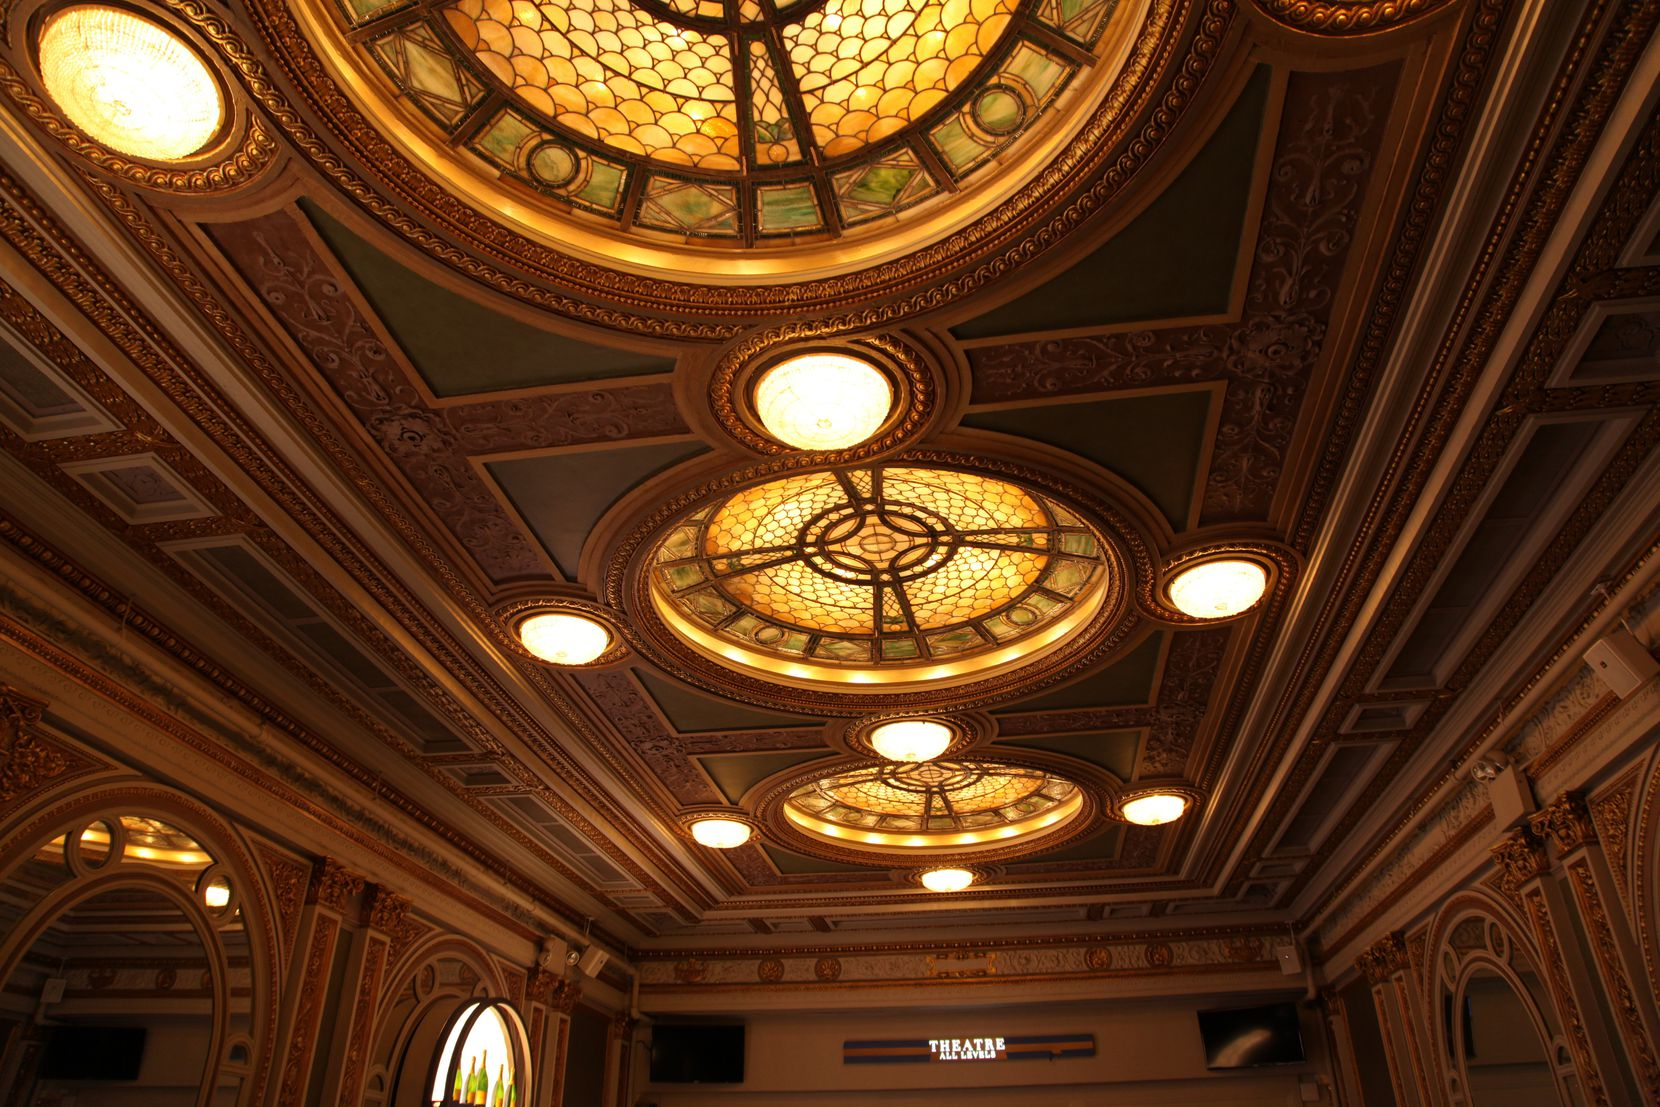 The triple-domed stained glass and bronze ceiling in the lobby is among the classic architectural touches at the Hudson Theatre.